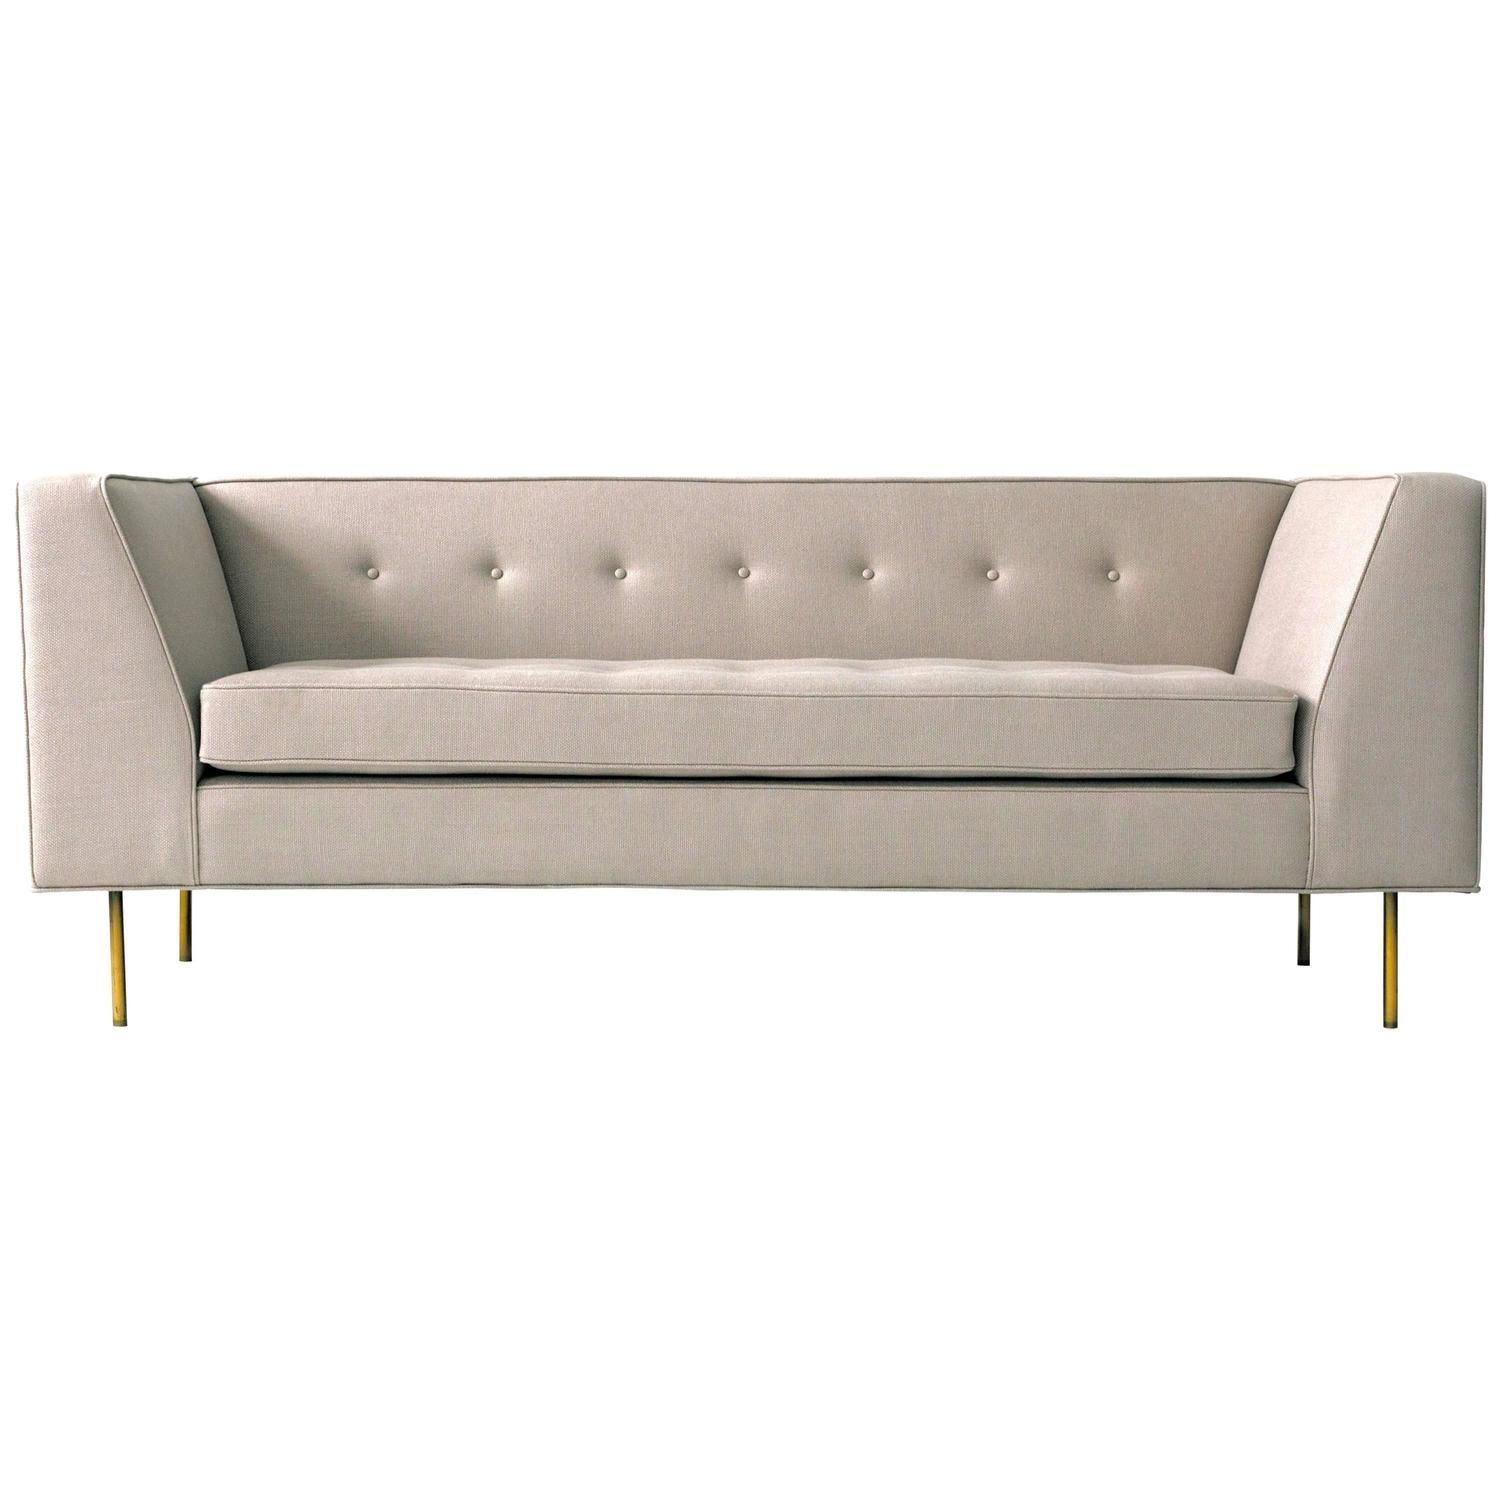 Harvey Probber Sofa Vintage Sofa Furniture Sofa